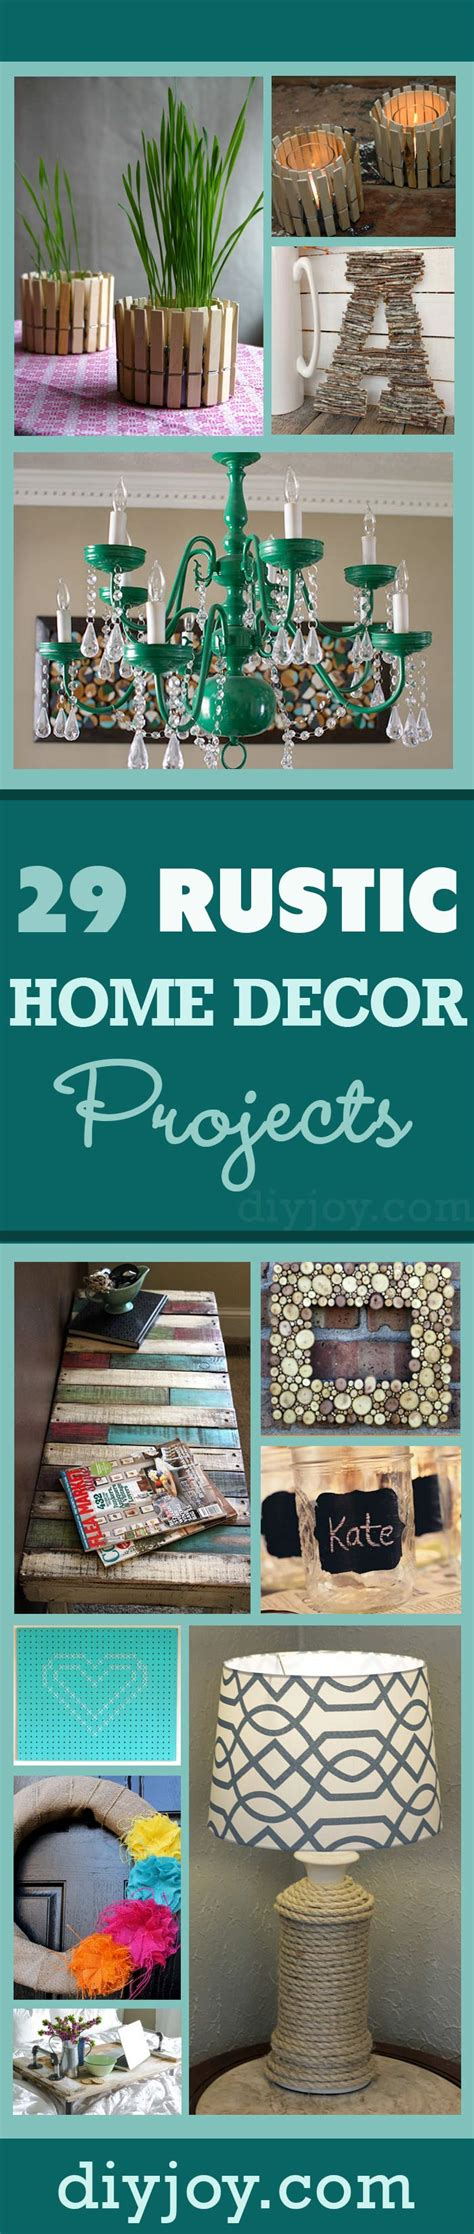 home decor diy crafts 29 rustic diy home decor ideas page 3 of 6 diy joy